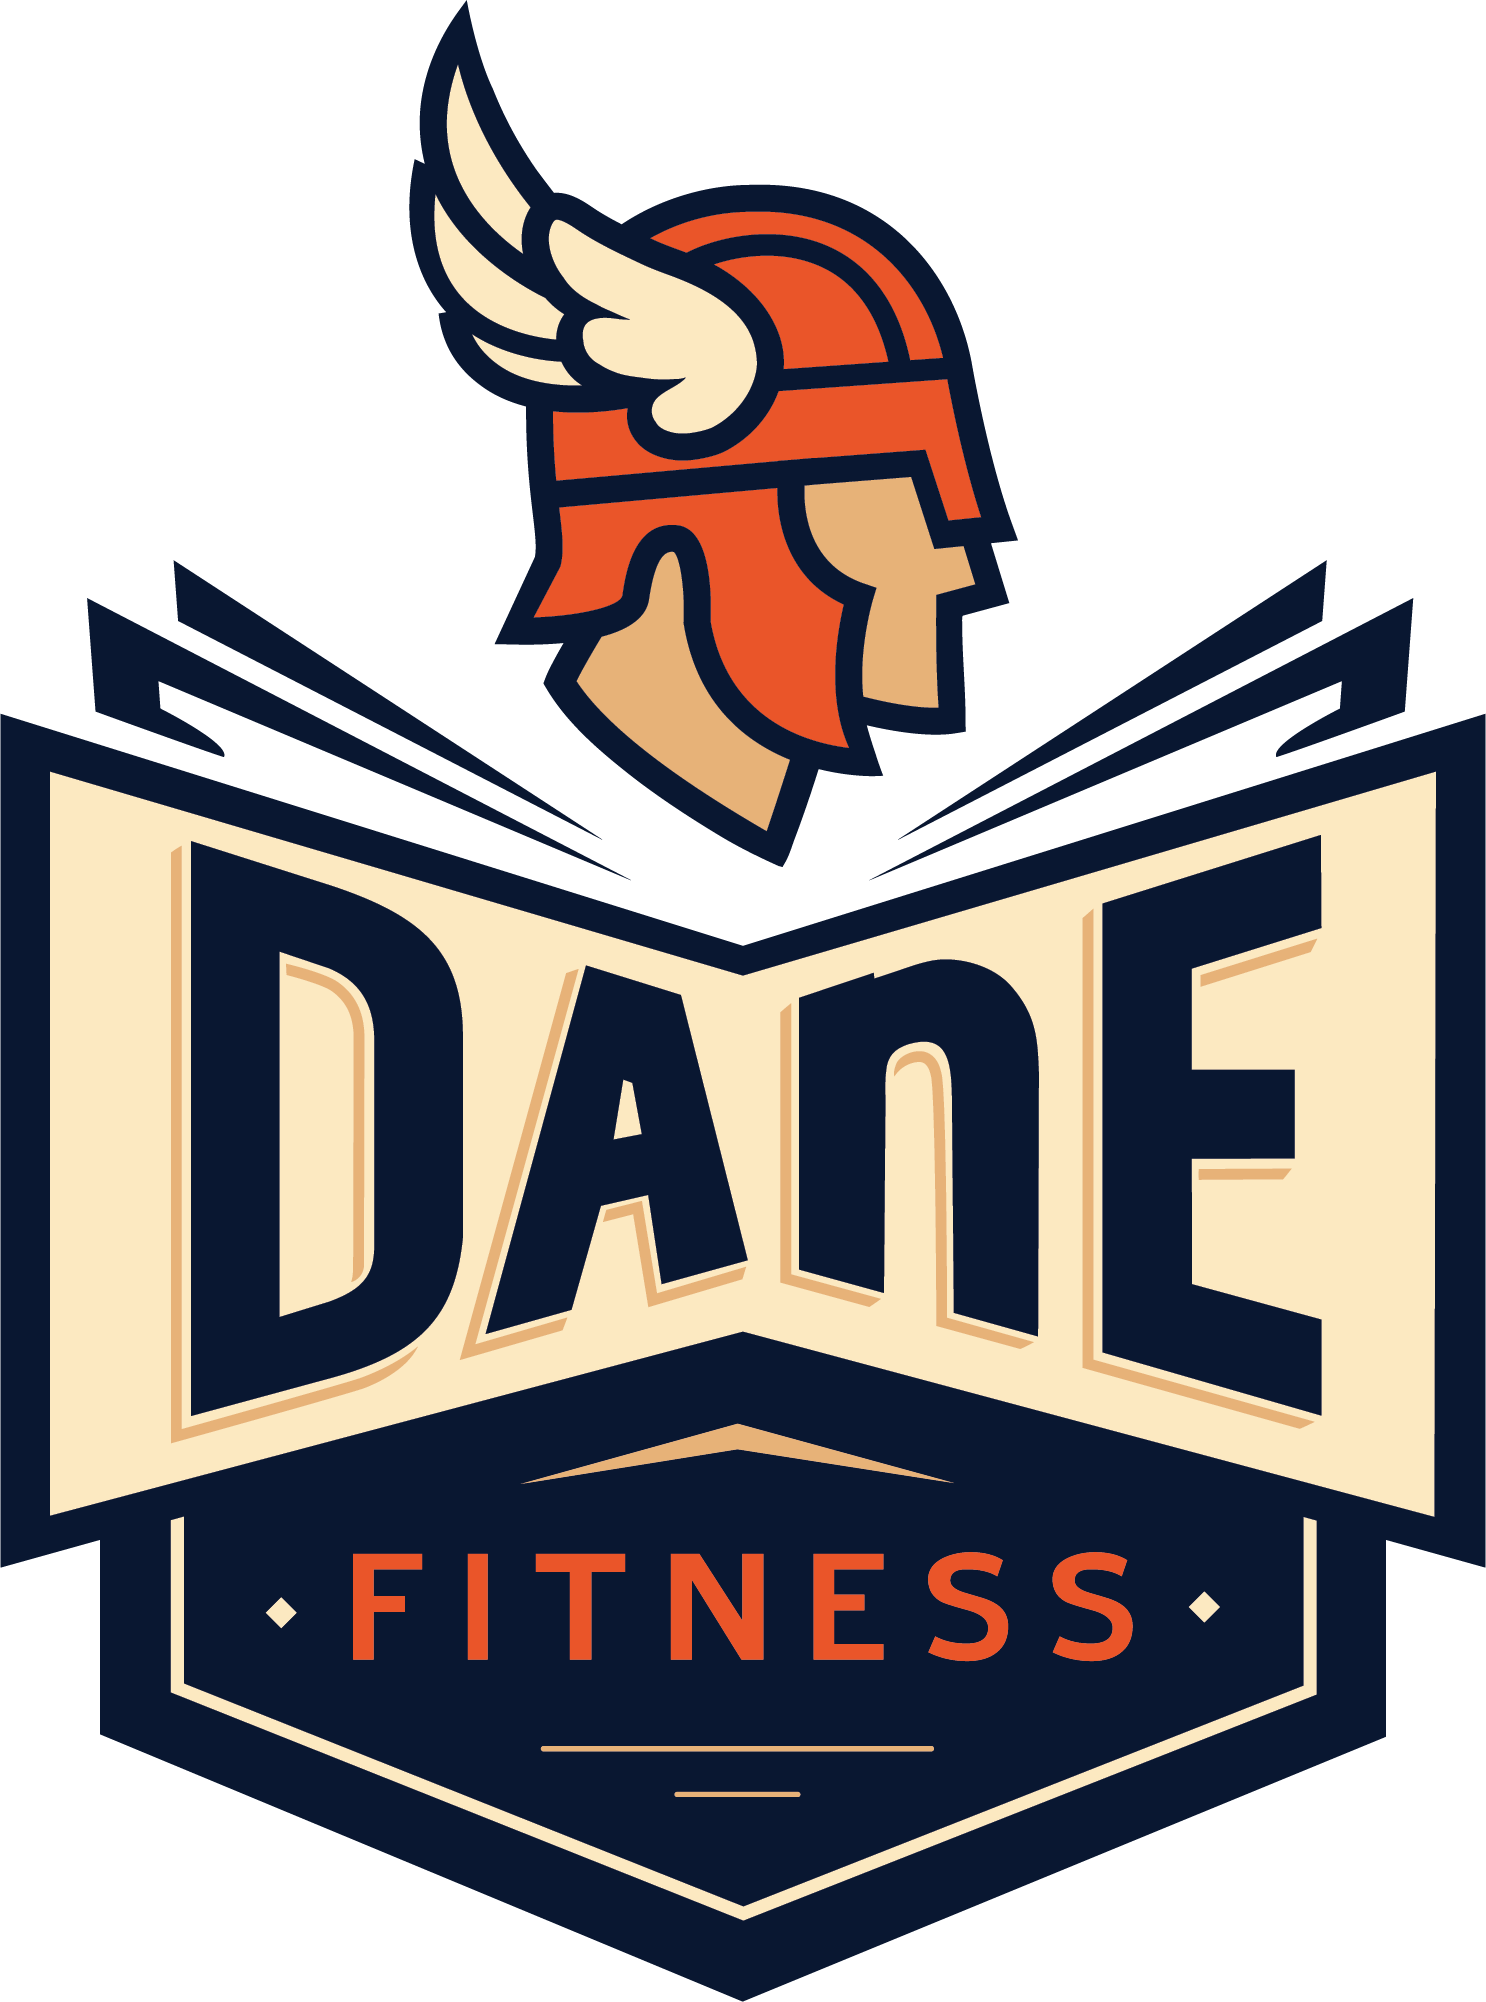 Nashville Fitness Equipment Sales & Service | Dane Fitness